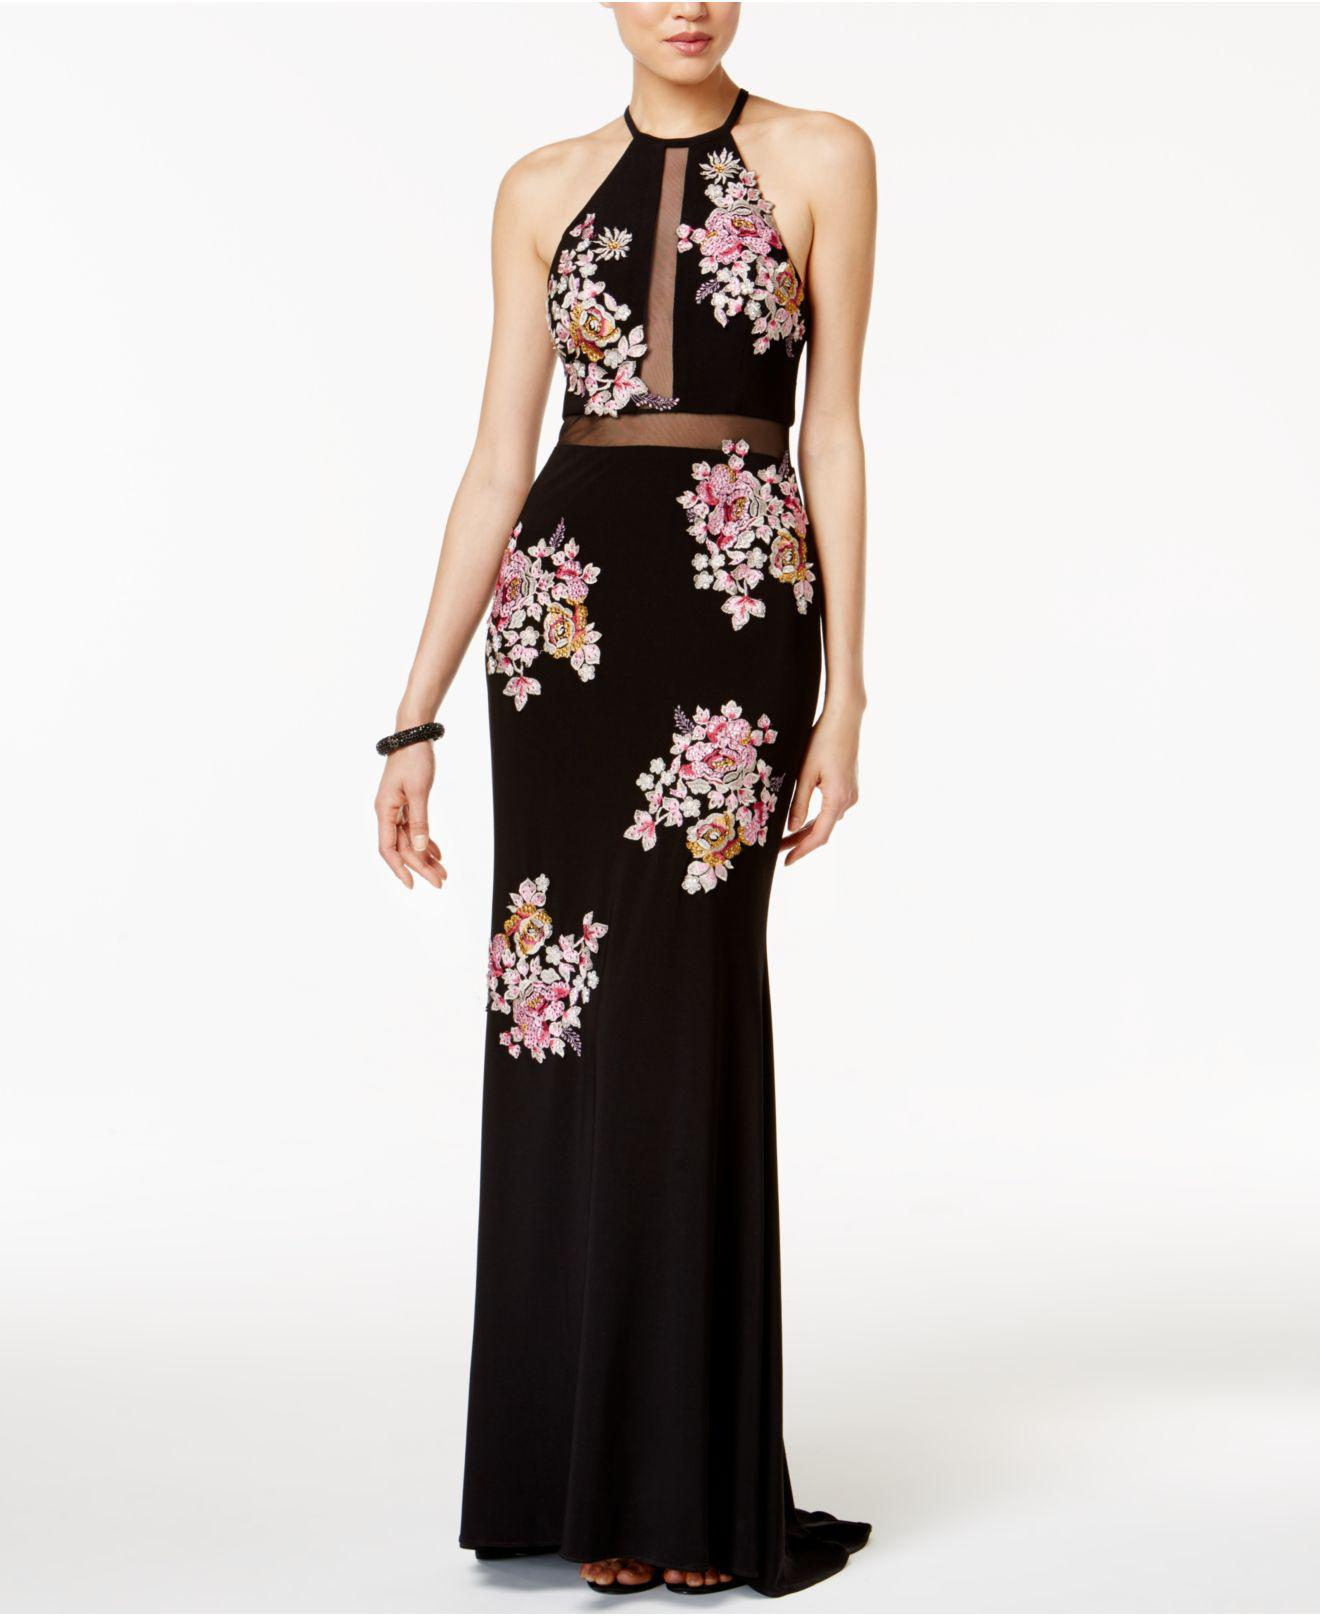 Lyst - Xscape Embroidered Open-back Illusion Halter Gown in Black